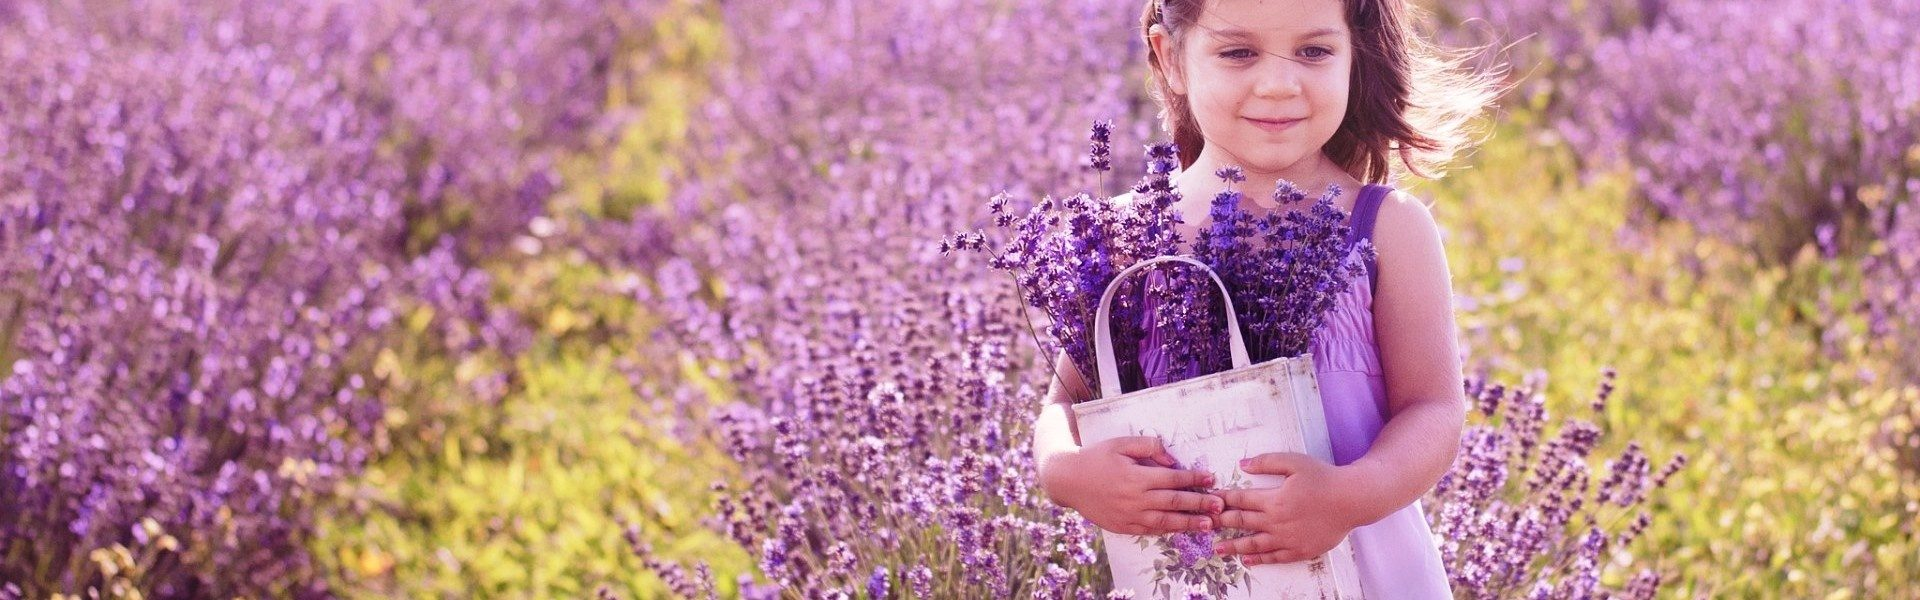 lavender-flowers-background_09273432